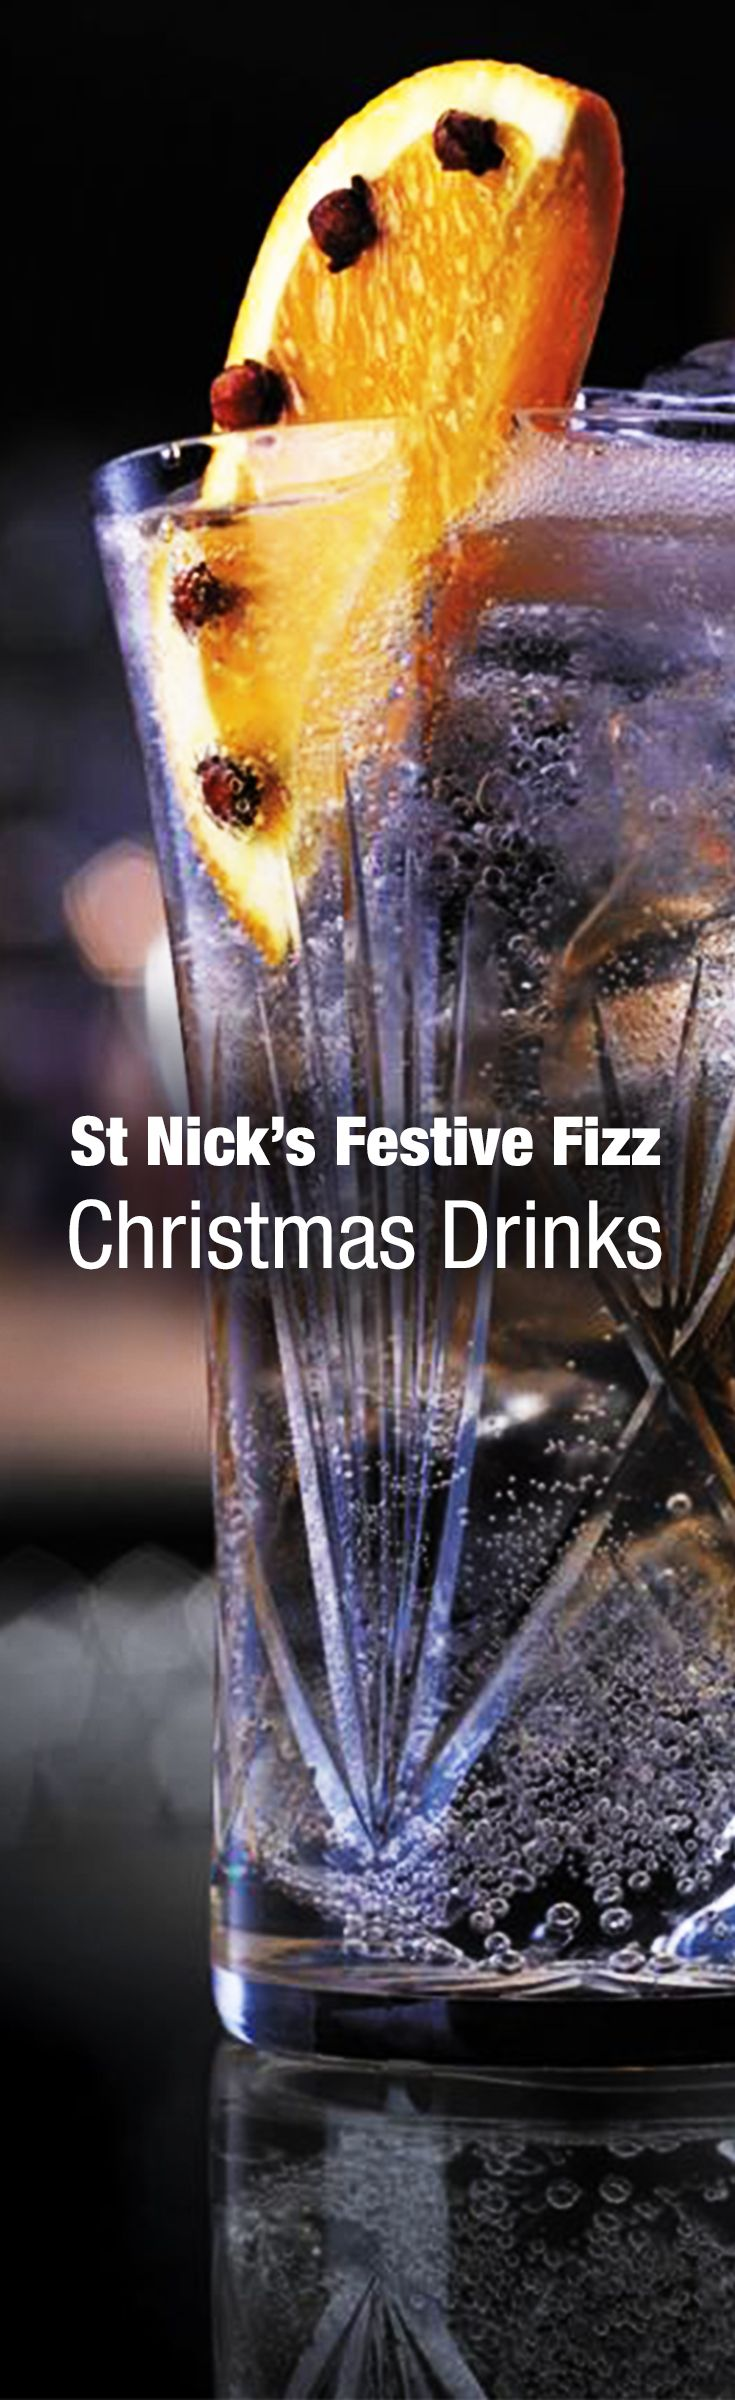 Bring a great present to the party with your St. Nick's Festive Fizz. This combination of Johnnie Walker Red Label and Schweppes Elderflower Tonic will surprise those guests who think only soda or cola should be paired with whisky – it's one that's worth unveiling. #Christmas #ChristmasDrinks #ChristmasCocktails #CocktailRecipes #Cocktails #Whisky